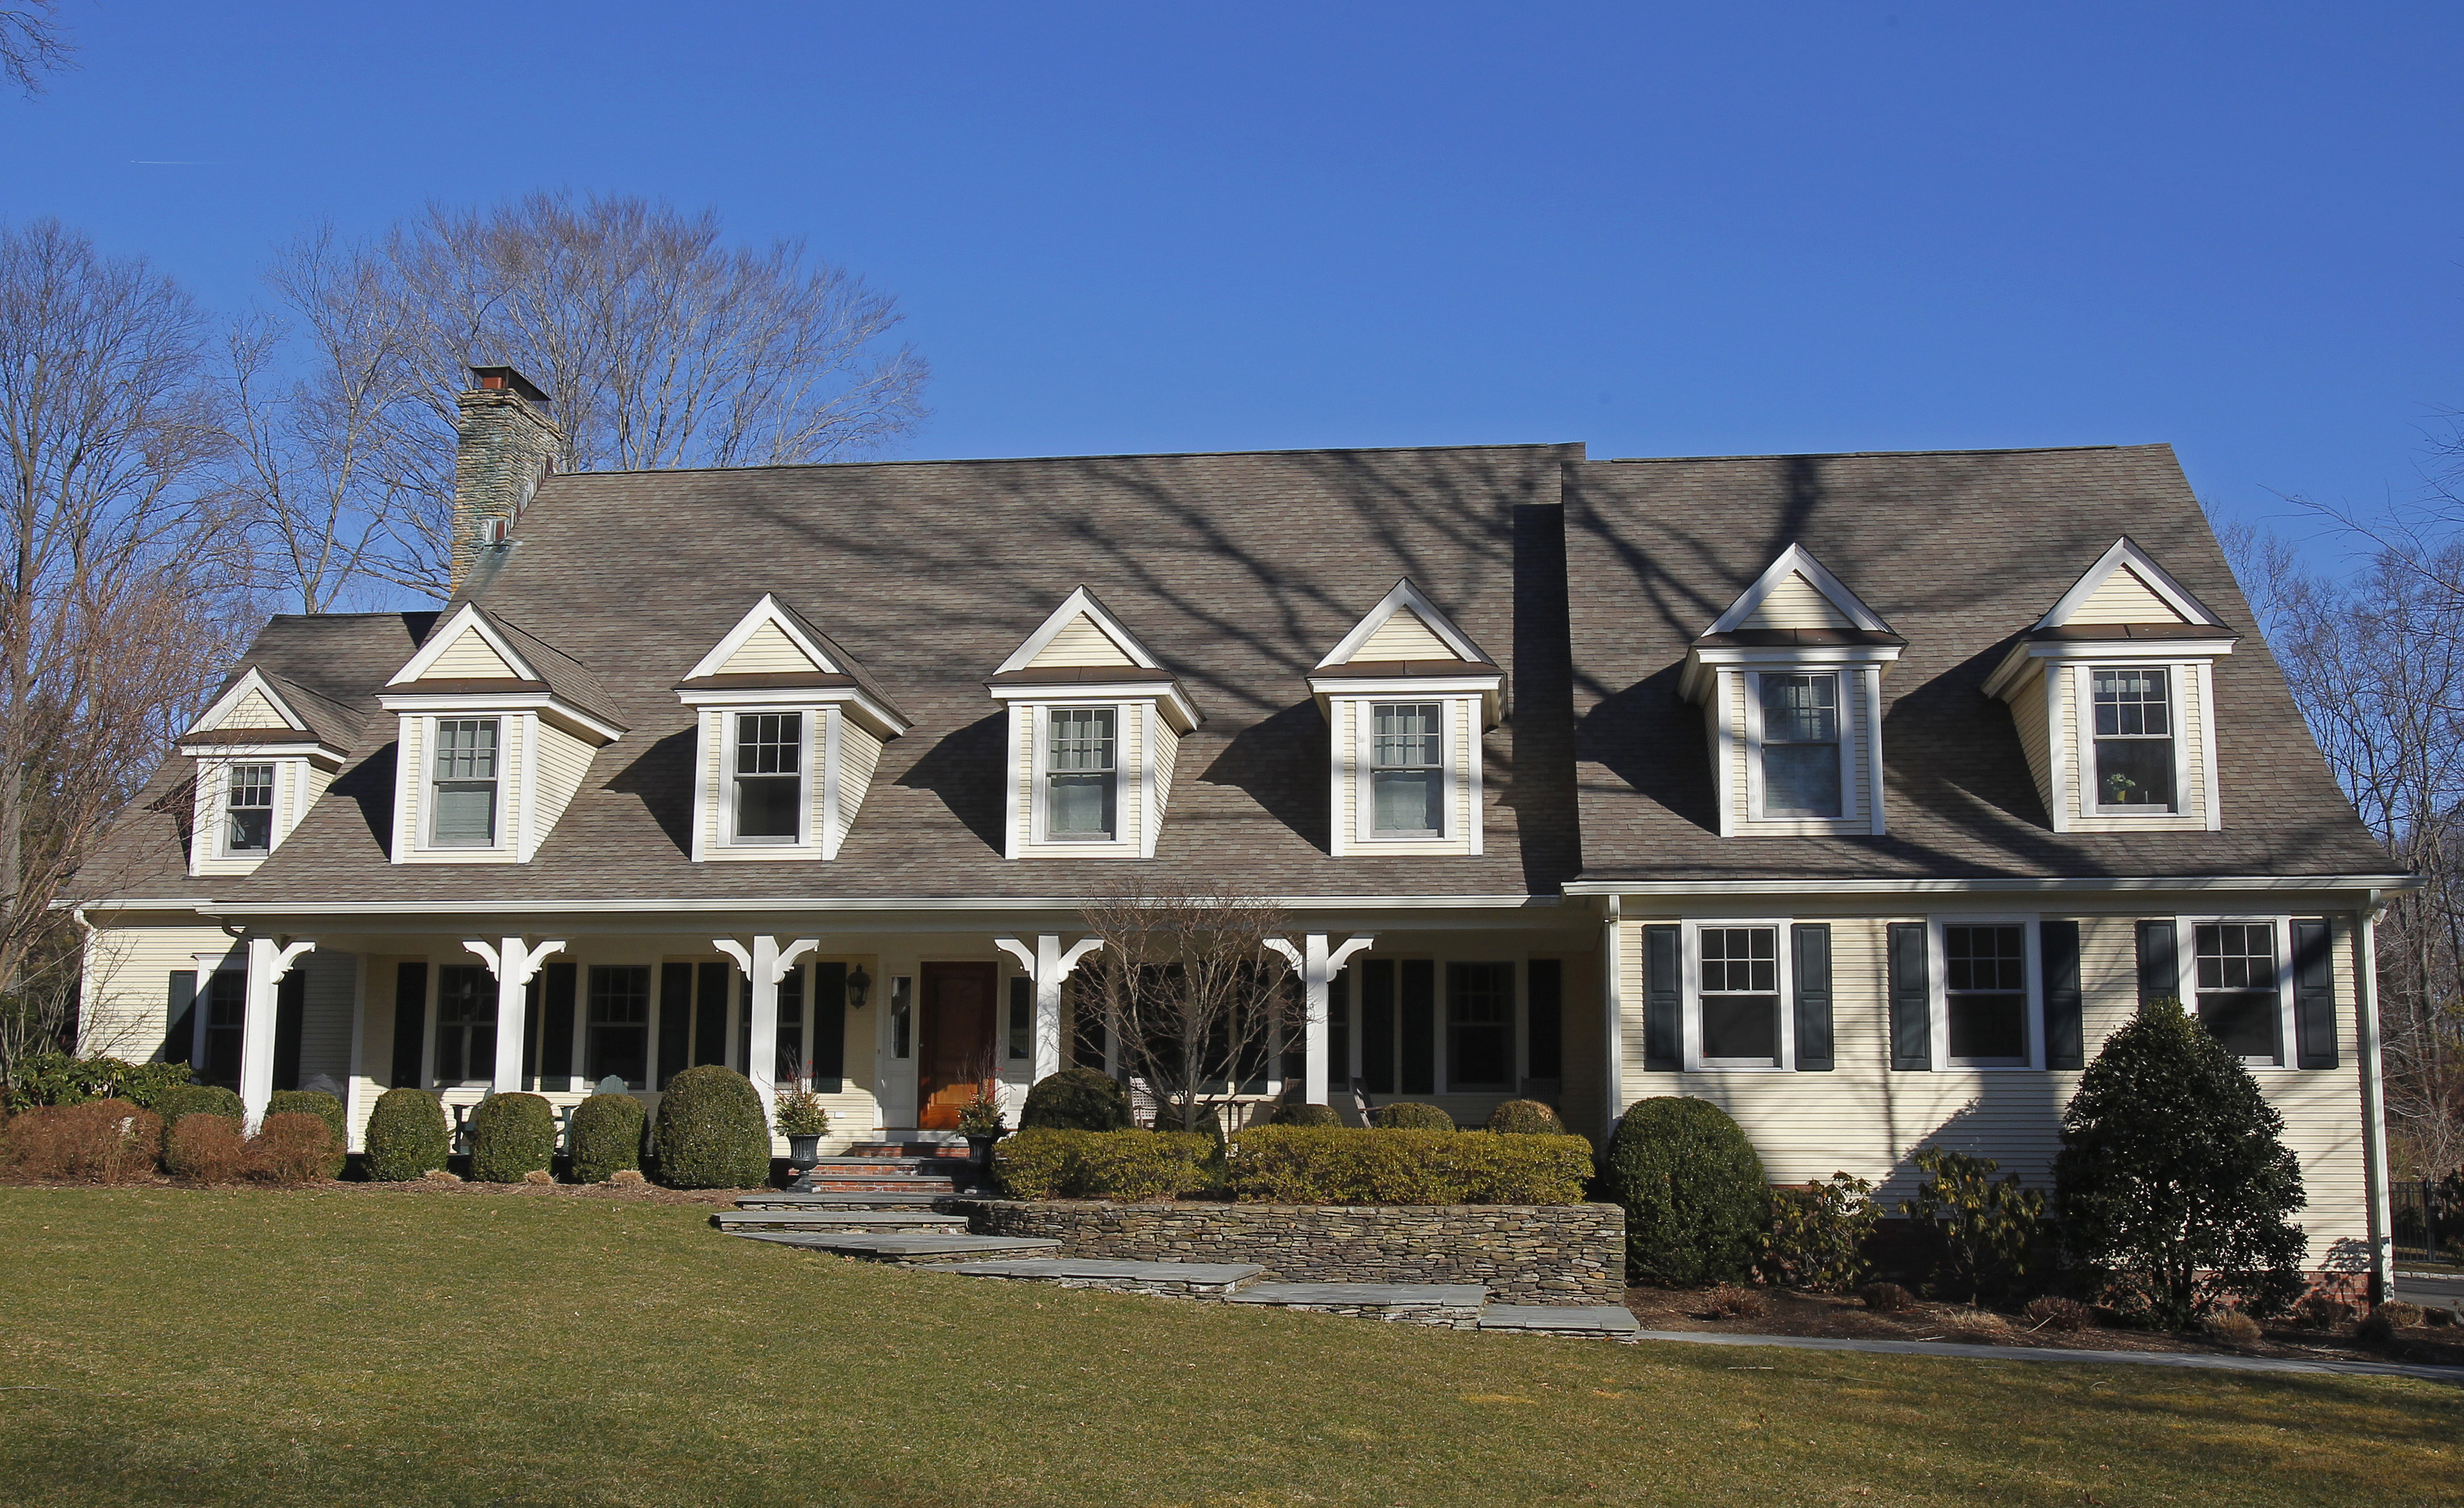 The home of Morgan Stanley investment banker, William Bryan Jennings, is seen in Darien, Connecticut on March 6, 2012.